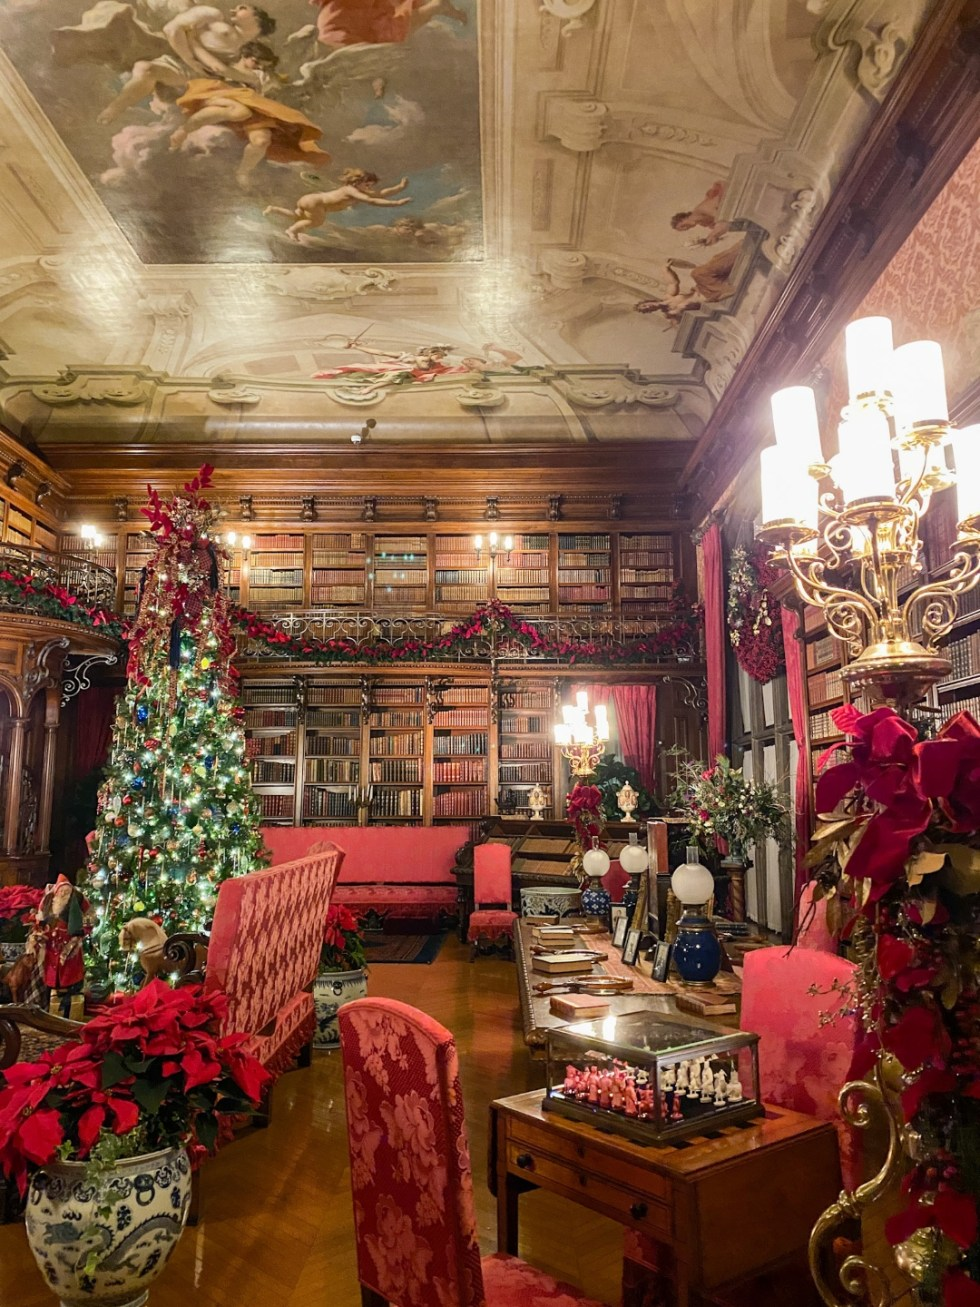 Christmas in Asheville: a Weekend Getaway During the Holidays - I'm Fixin' To - @imfixintoblog |Christmas in Asheville NC by popular NC lifestyle blog, I'm Fixin' To: image of the Biltmore House library.